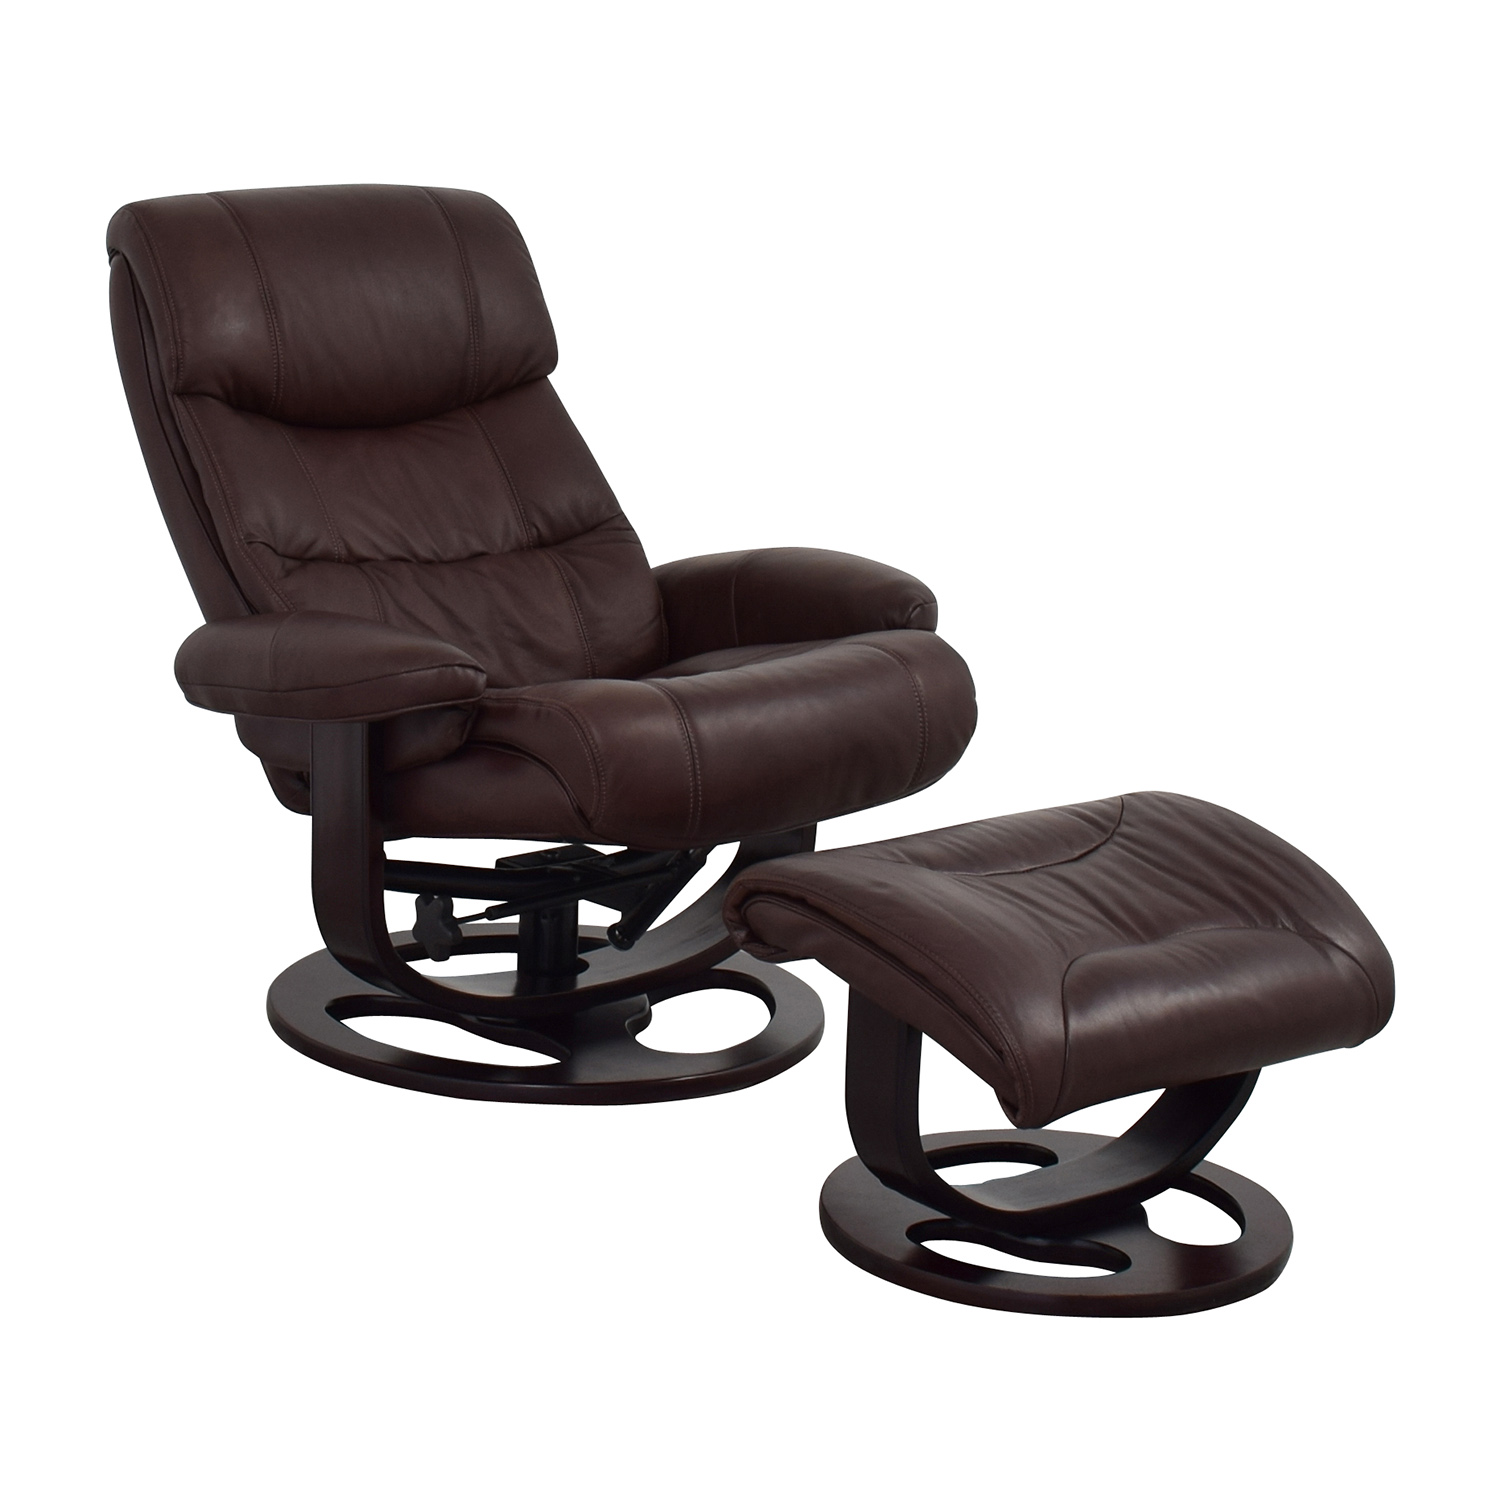 Macys Leather Chair Brown Leather Chair And Ottoman